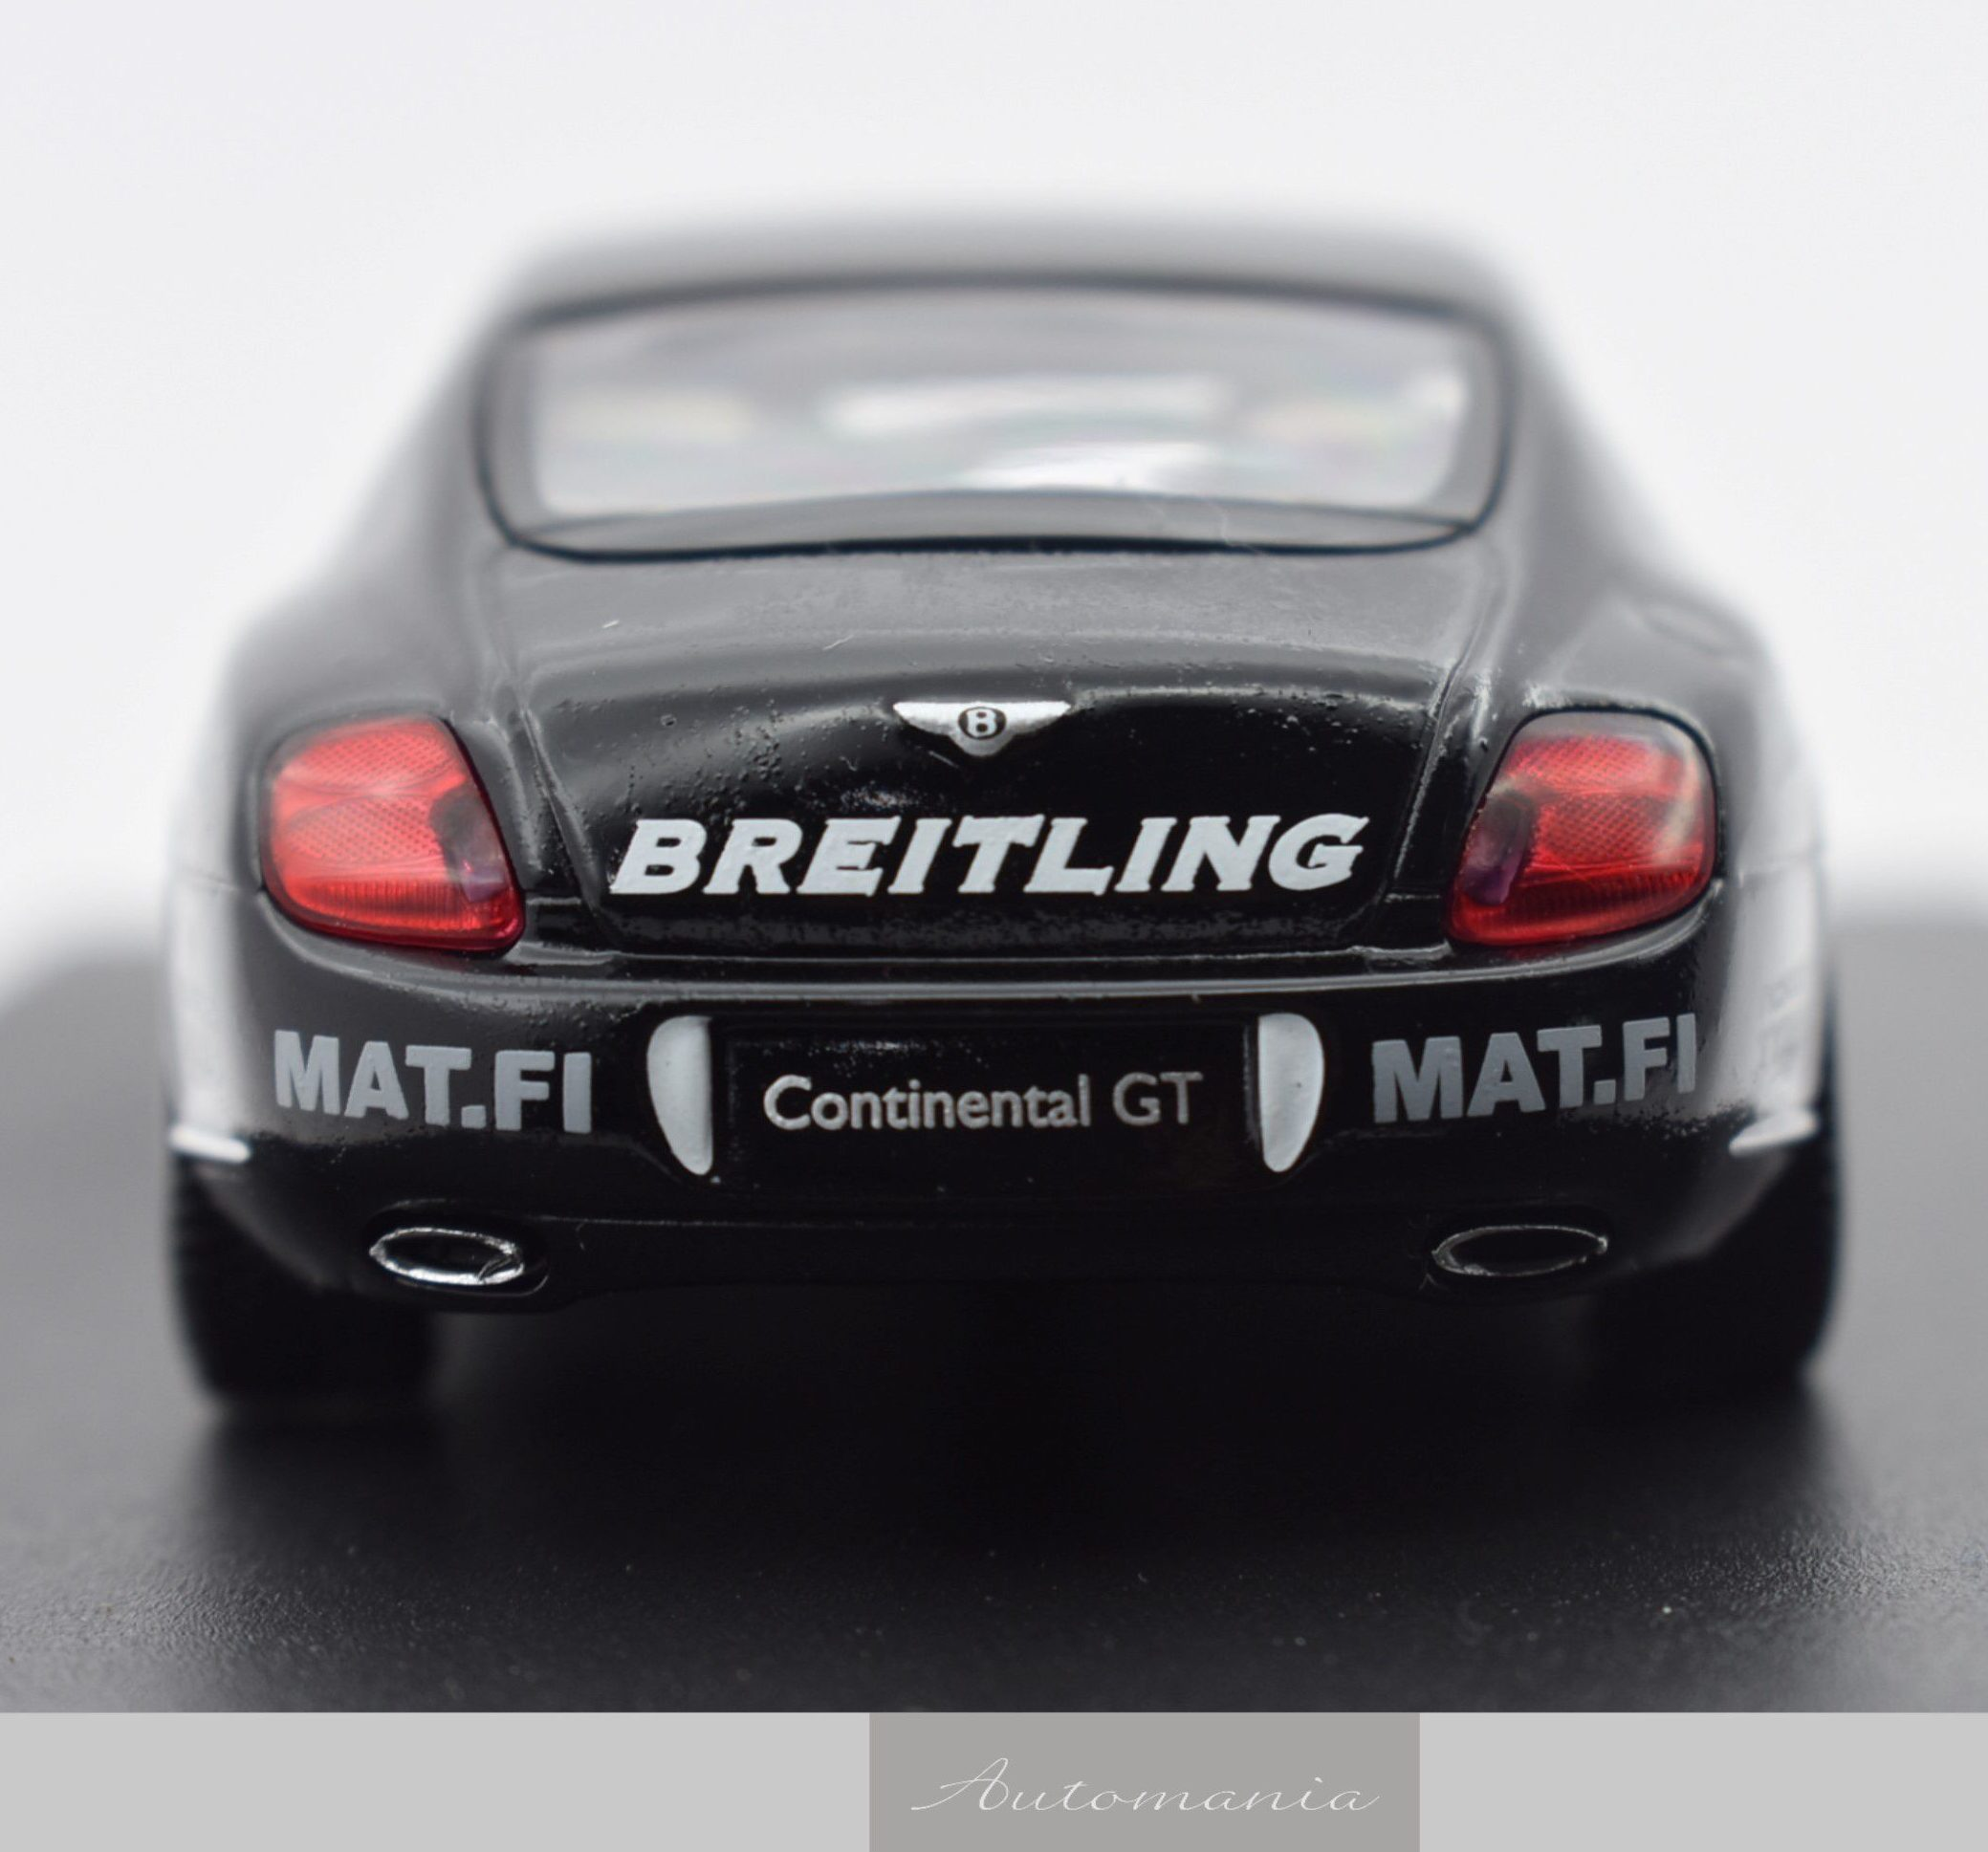 Bentley 2007 Continental GT